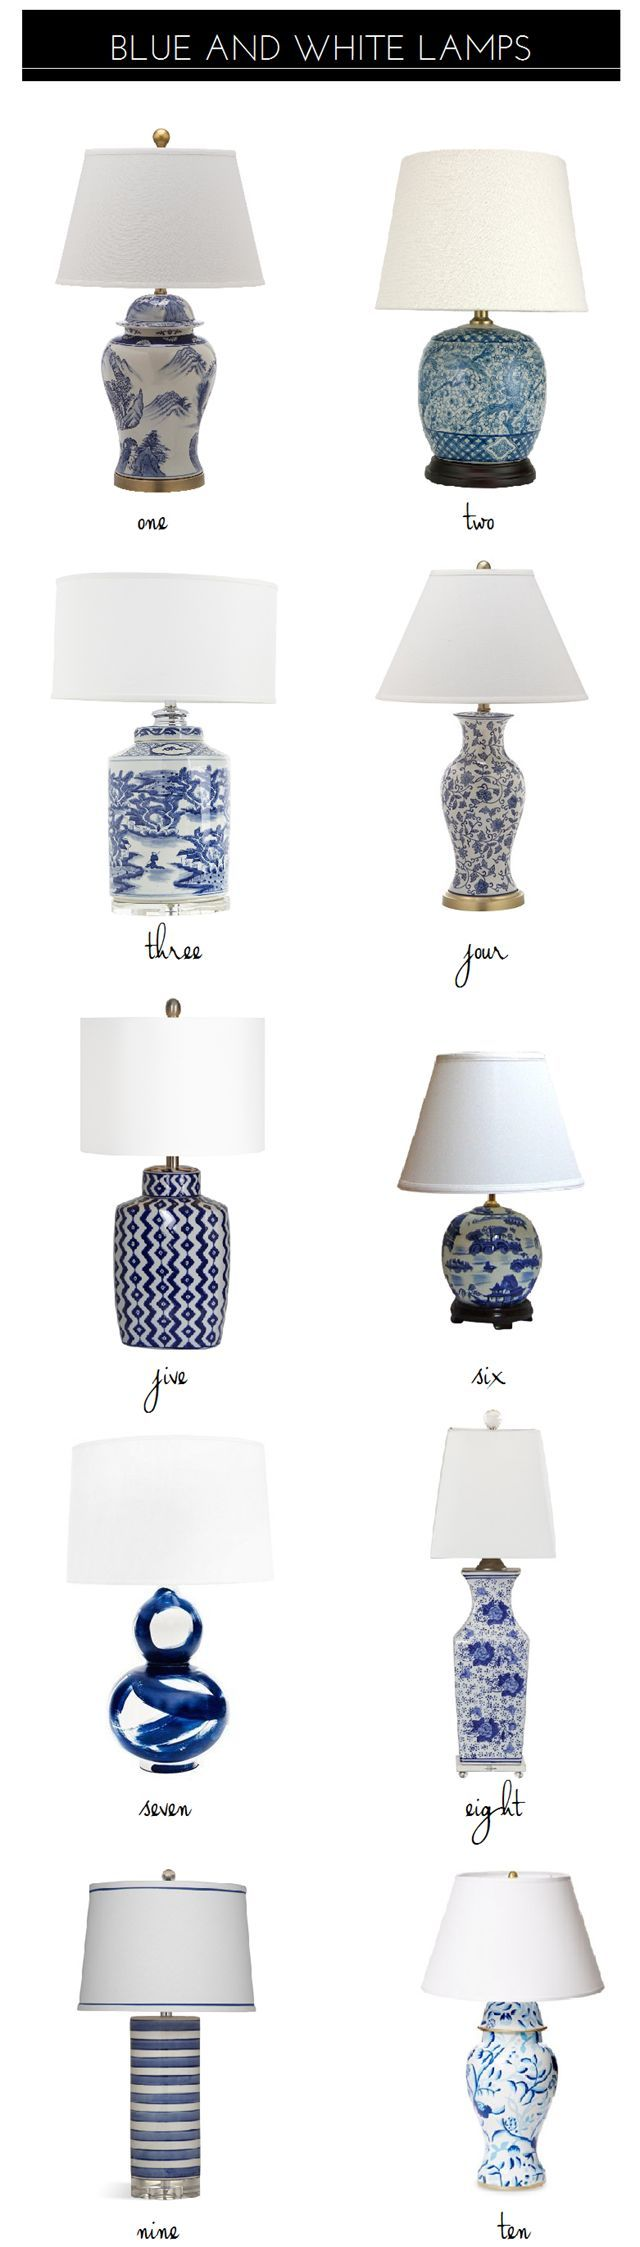 10 classic blue and white lamps clarks blog and lights 10 classic blue and white lamps geotapseo Image collections